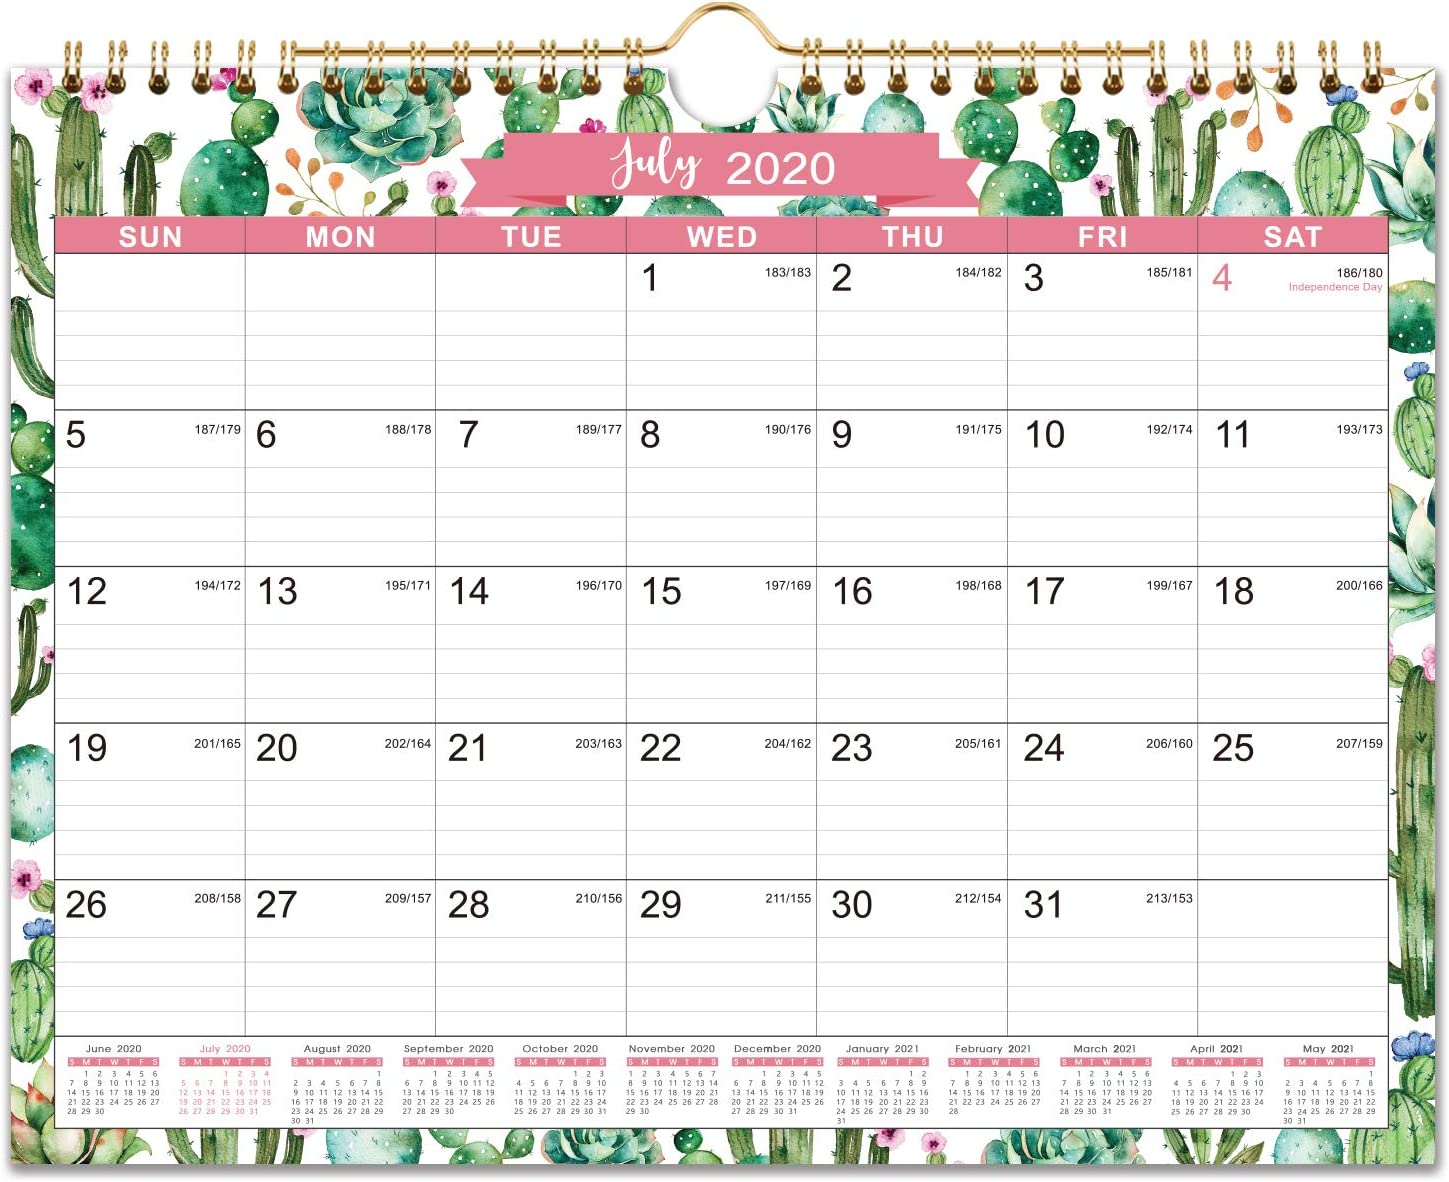 "2020-2021 Calendar - 18 Monthly Wall Calendar, 11"" x 8.5"", Jul. 2020 - Dec. 2021, Twin-Wire Binding, Ruled Blocks with Julian Dates, Perfect for Planning and Organizing for Home or Office"